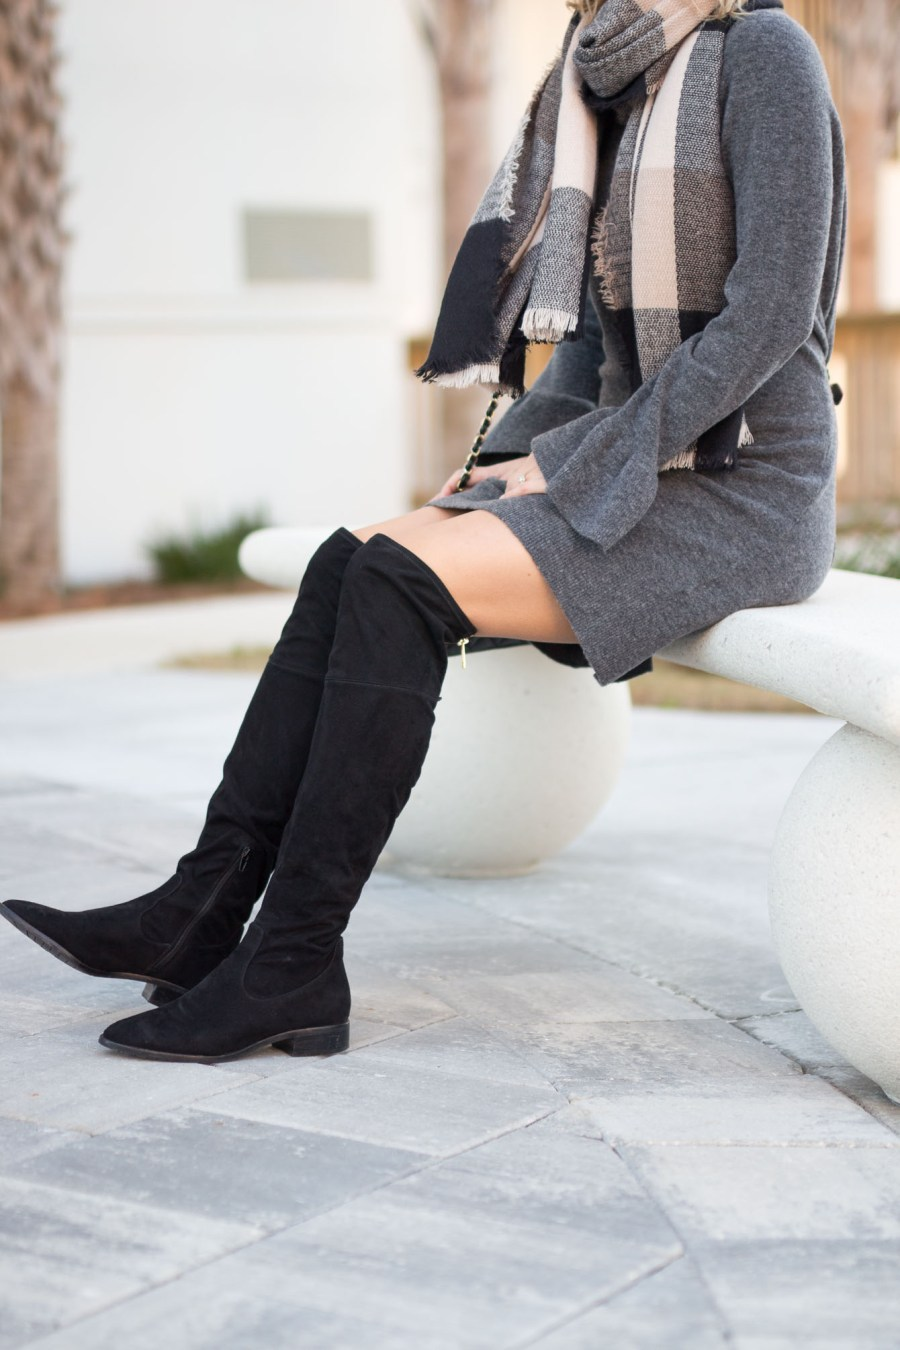 How To Style a Sweater Dress This Winter